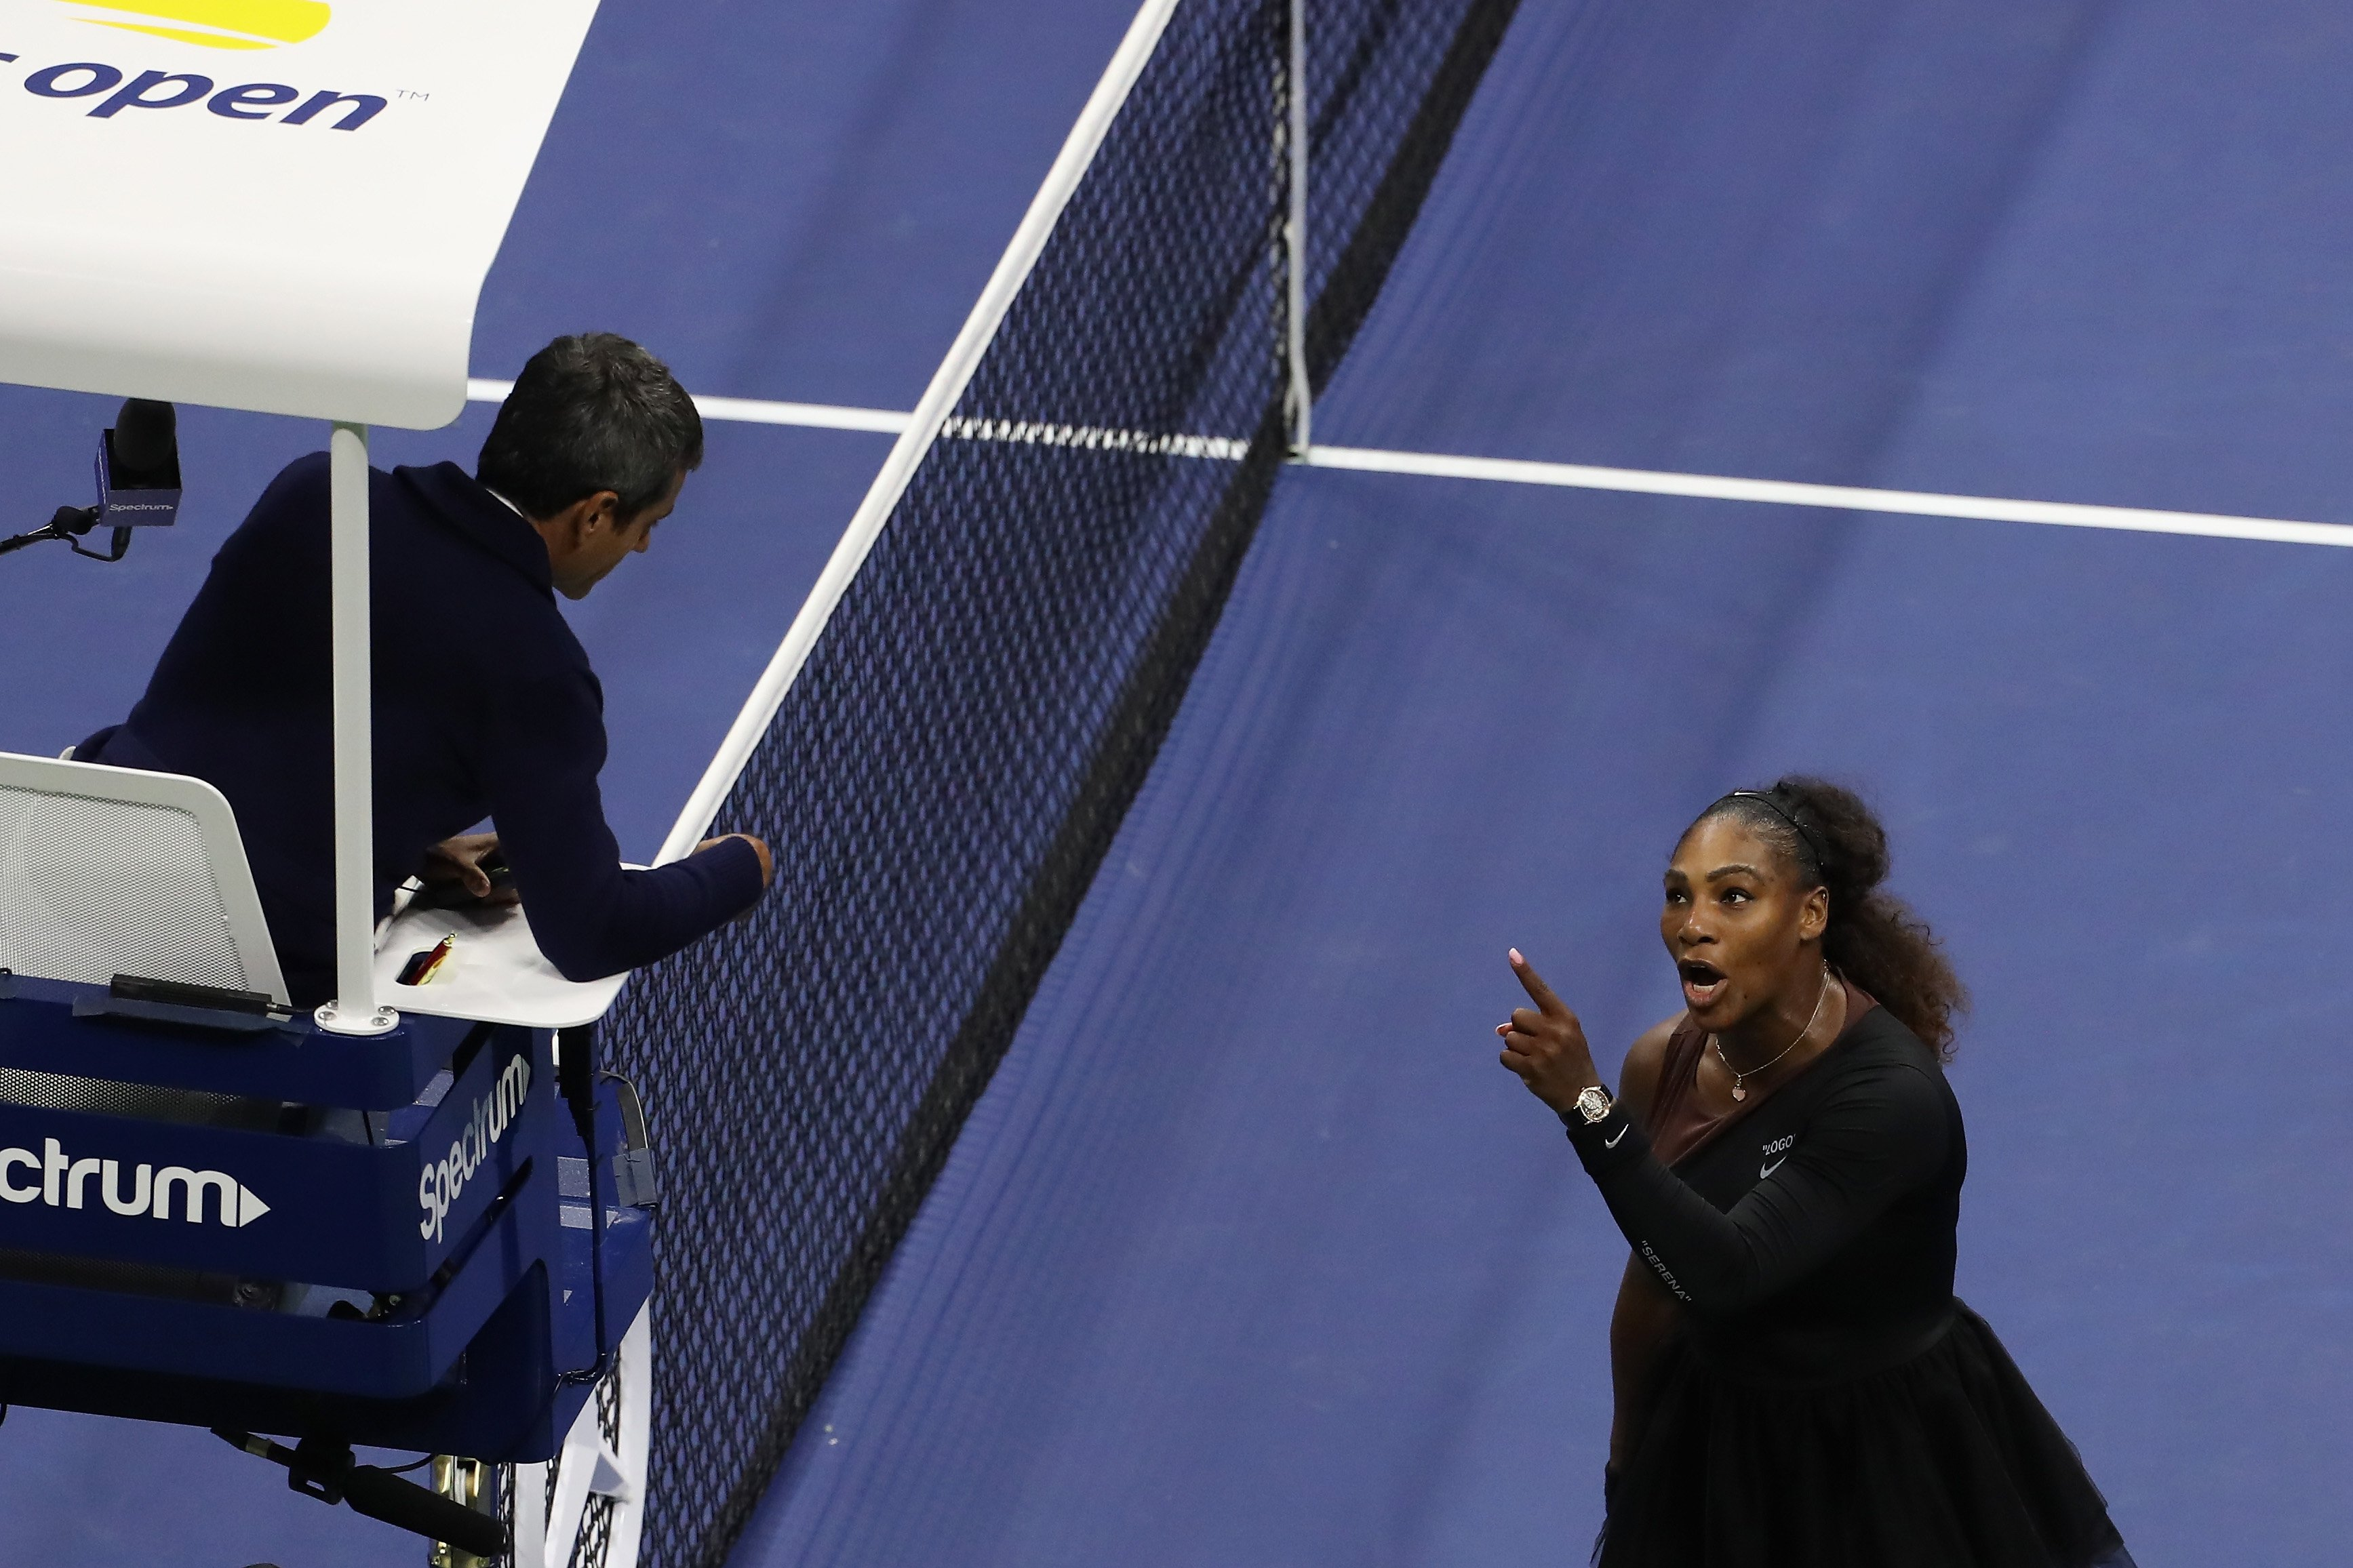 Serena Williams debates with the chair umpire Carlos Ramos during US Open 2018 women's final match on Sept. 8, 2018 in New York. |Photo: Getty Images